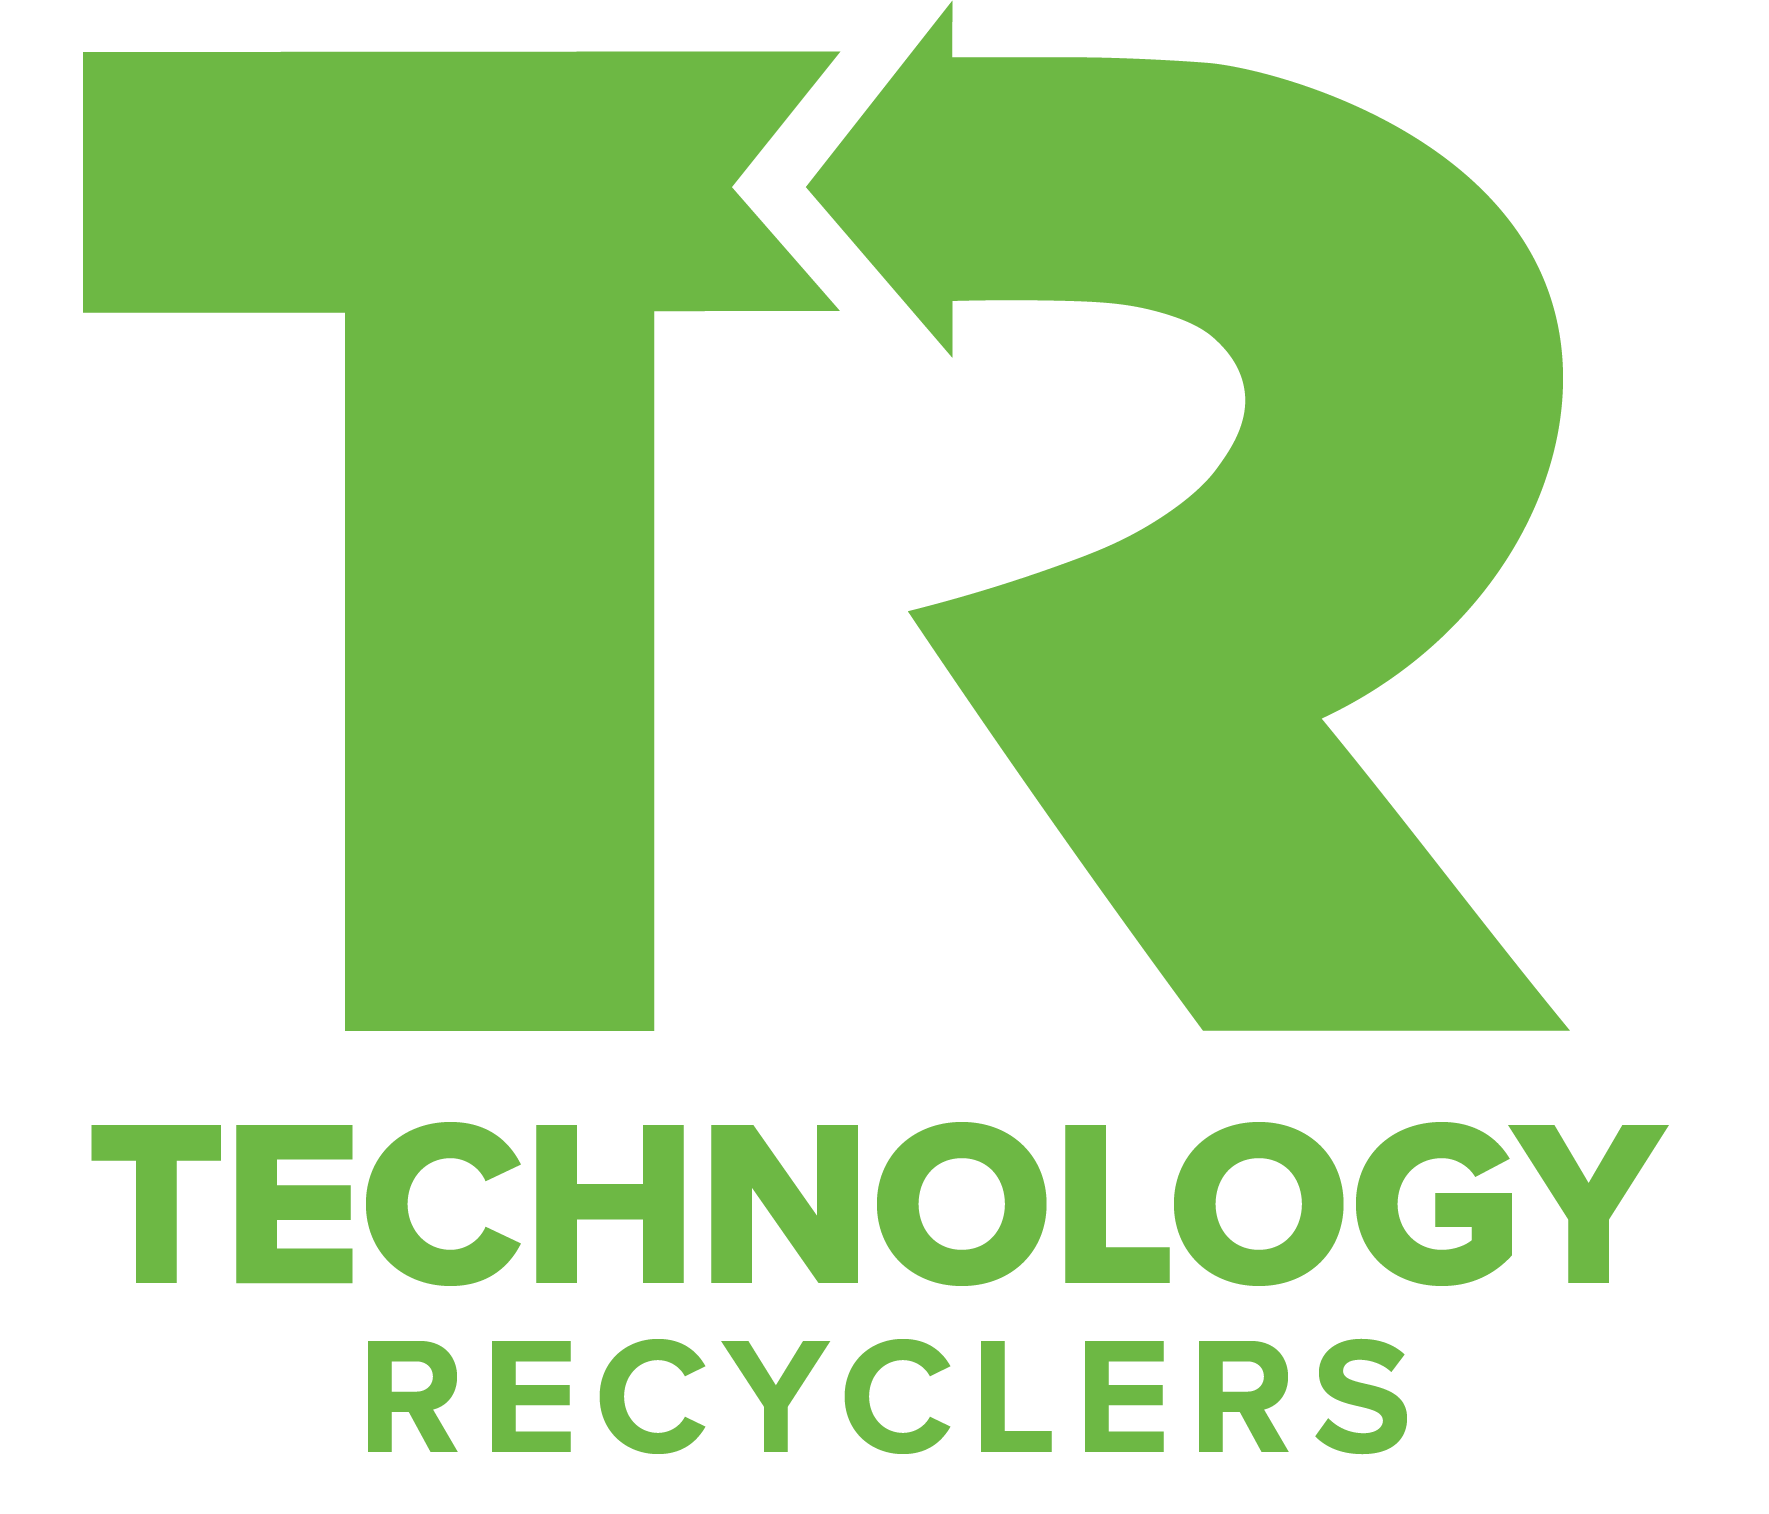 TechRecyclersNewLogo-GRN